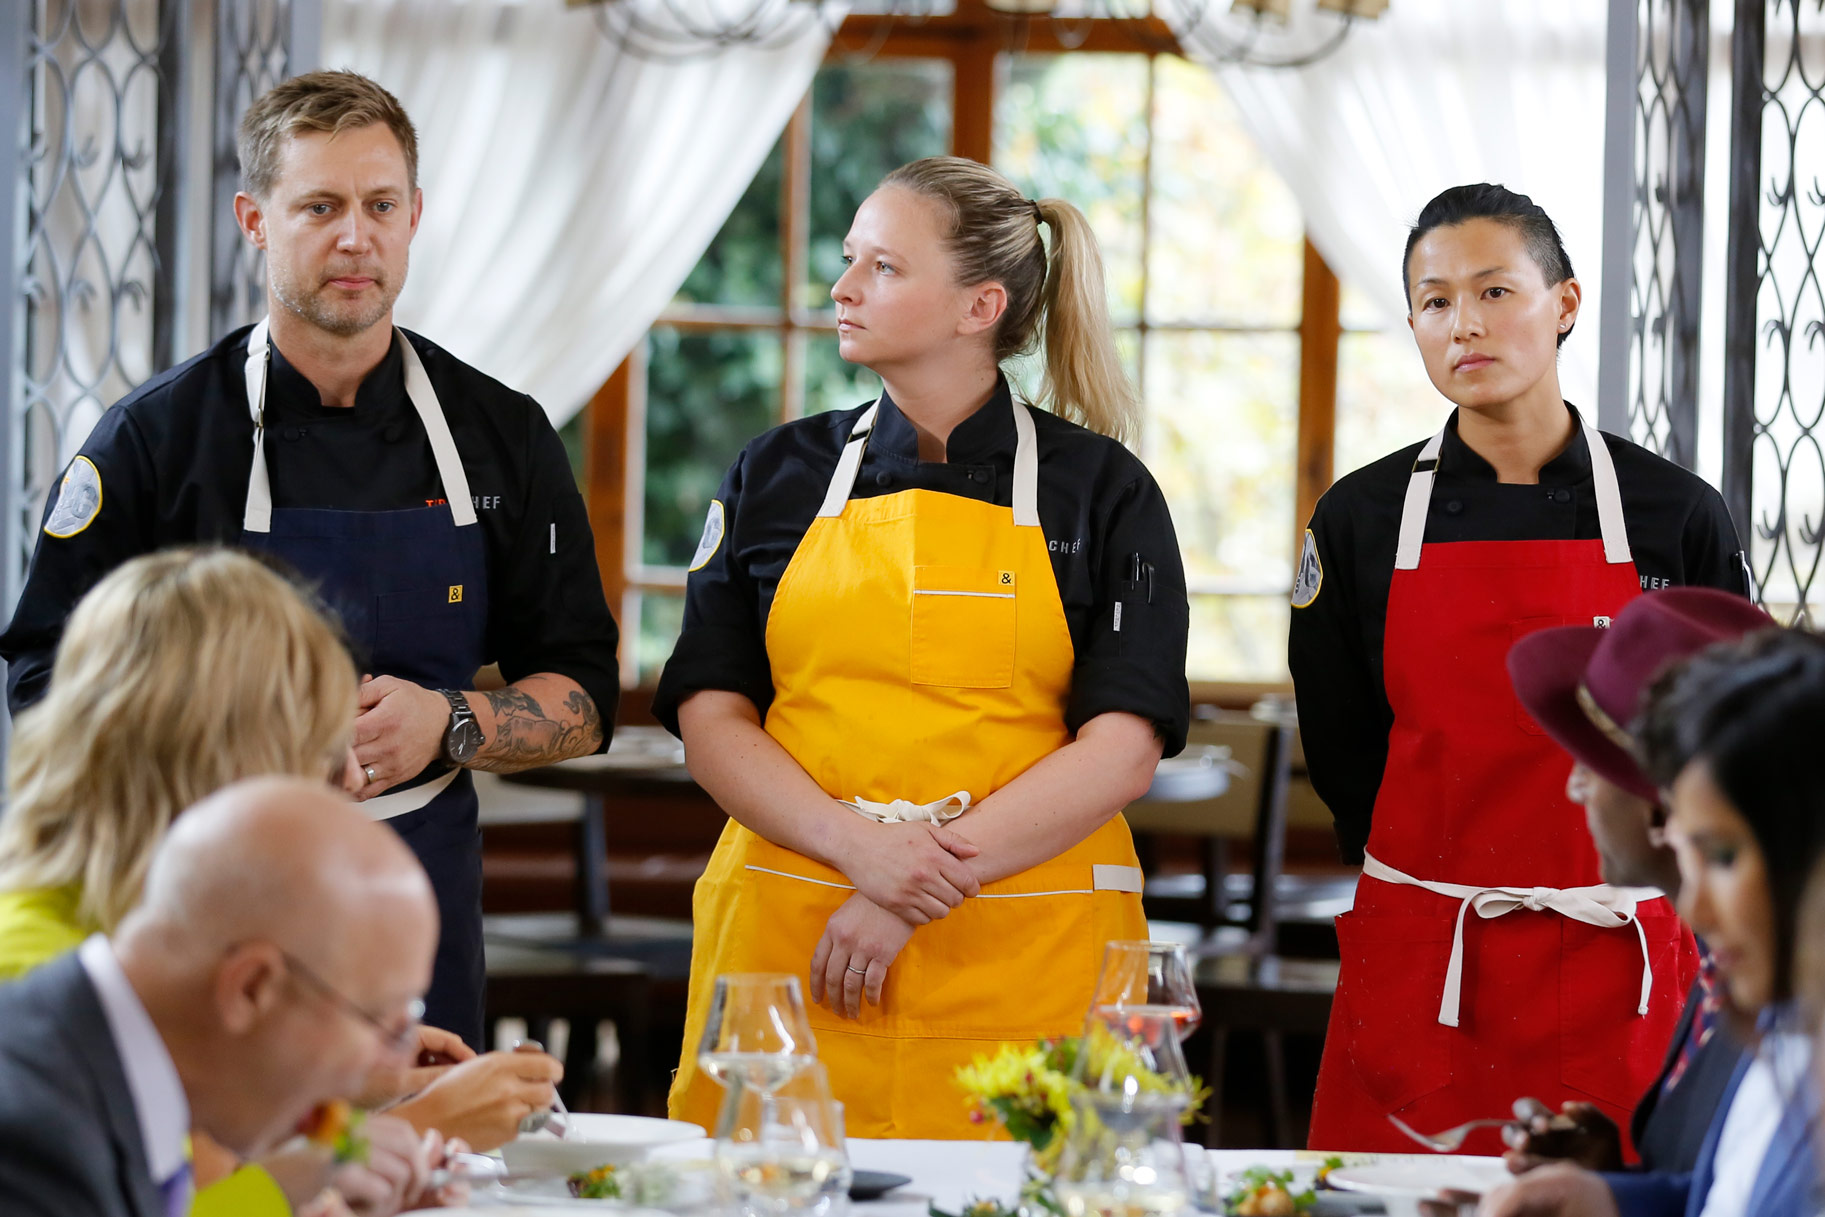 Tom Chef Winner Talks Finale